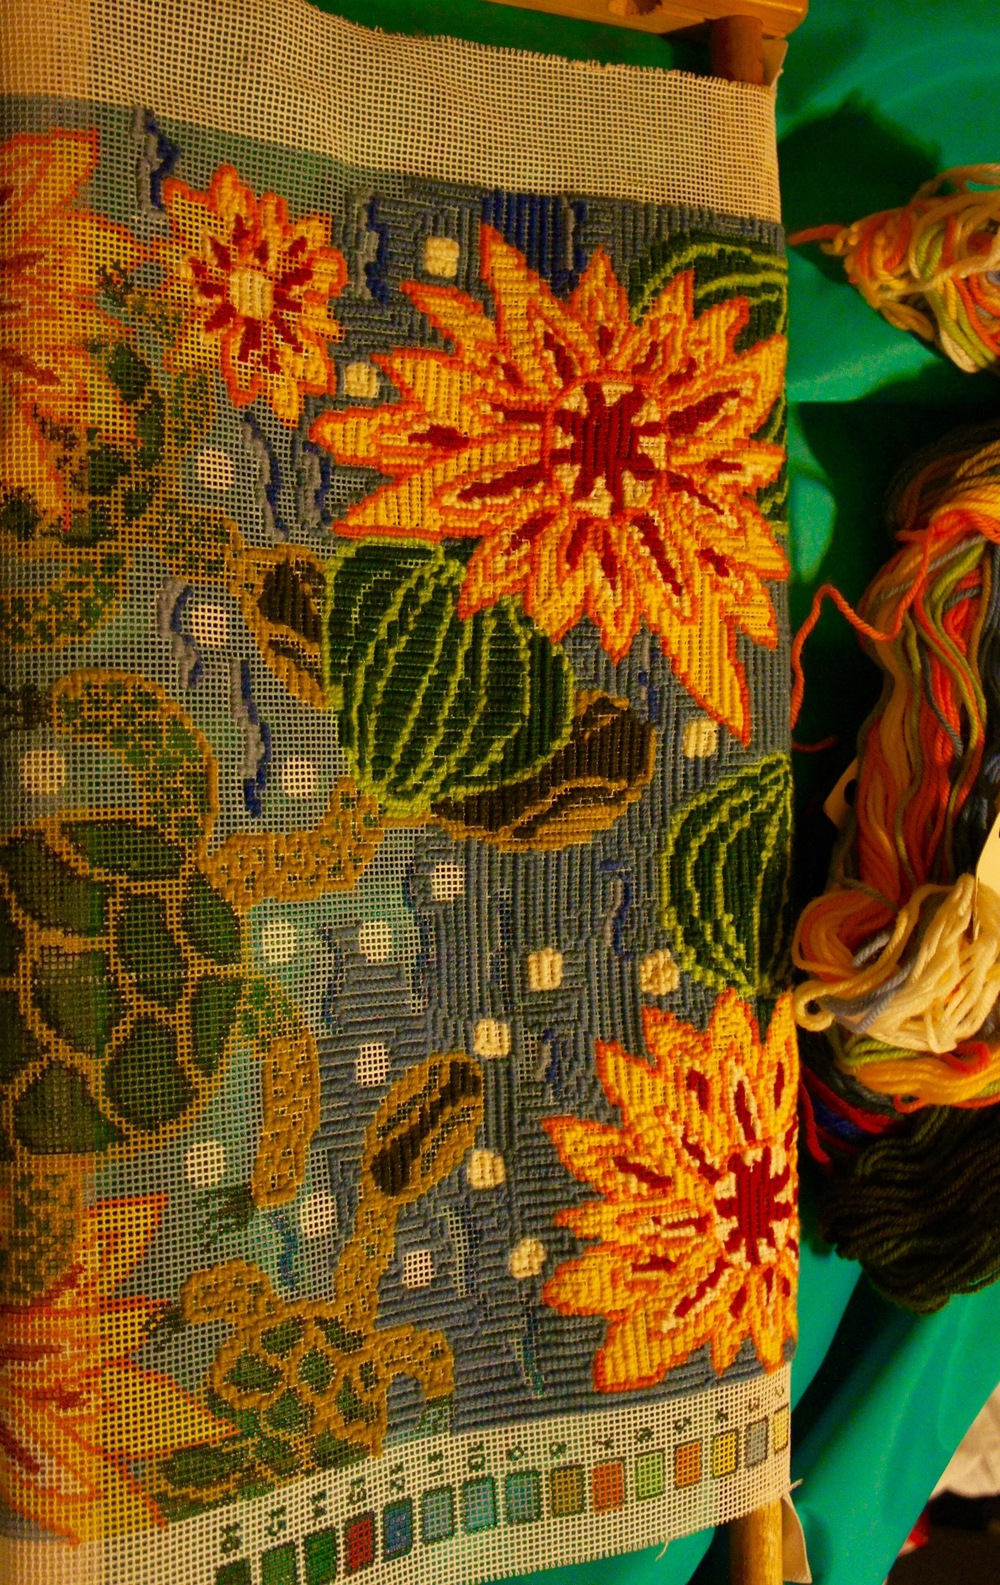 Half-formed turtles heading into stormy seas: the abandoned yellow water-lily tapestry.